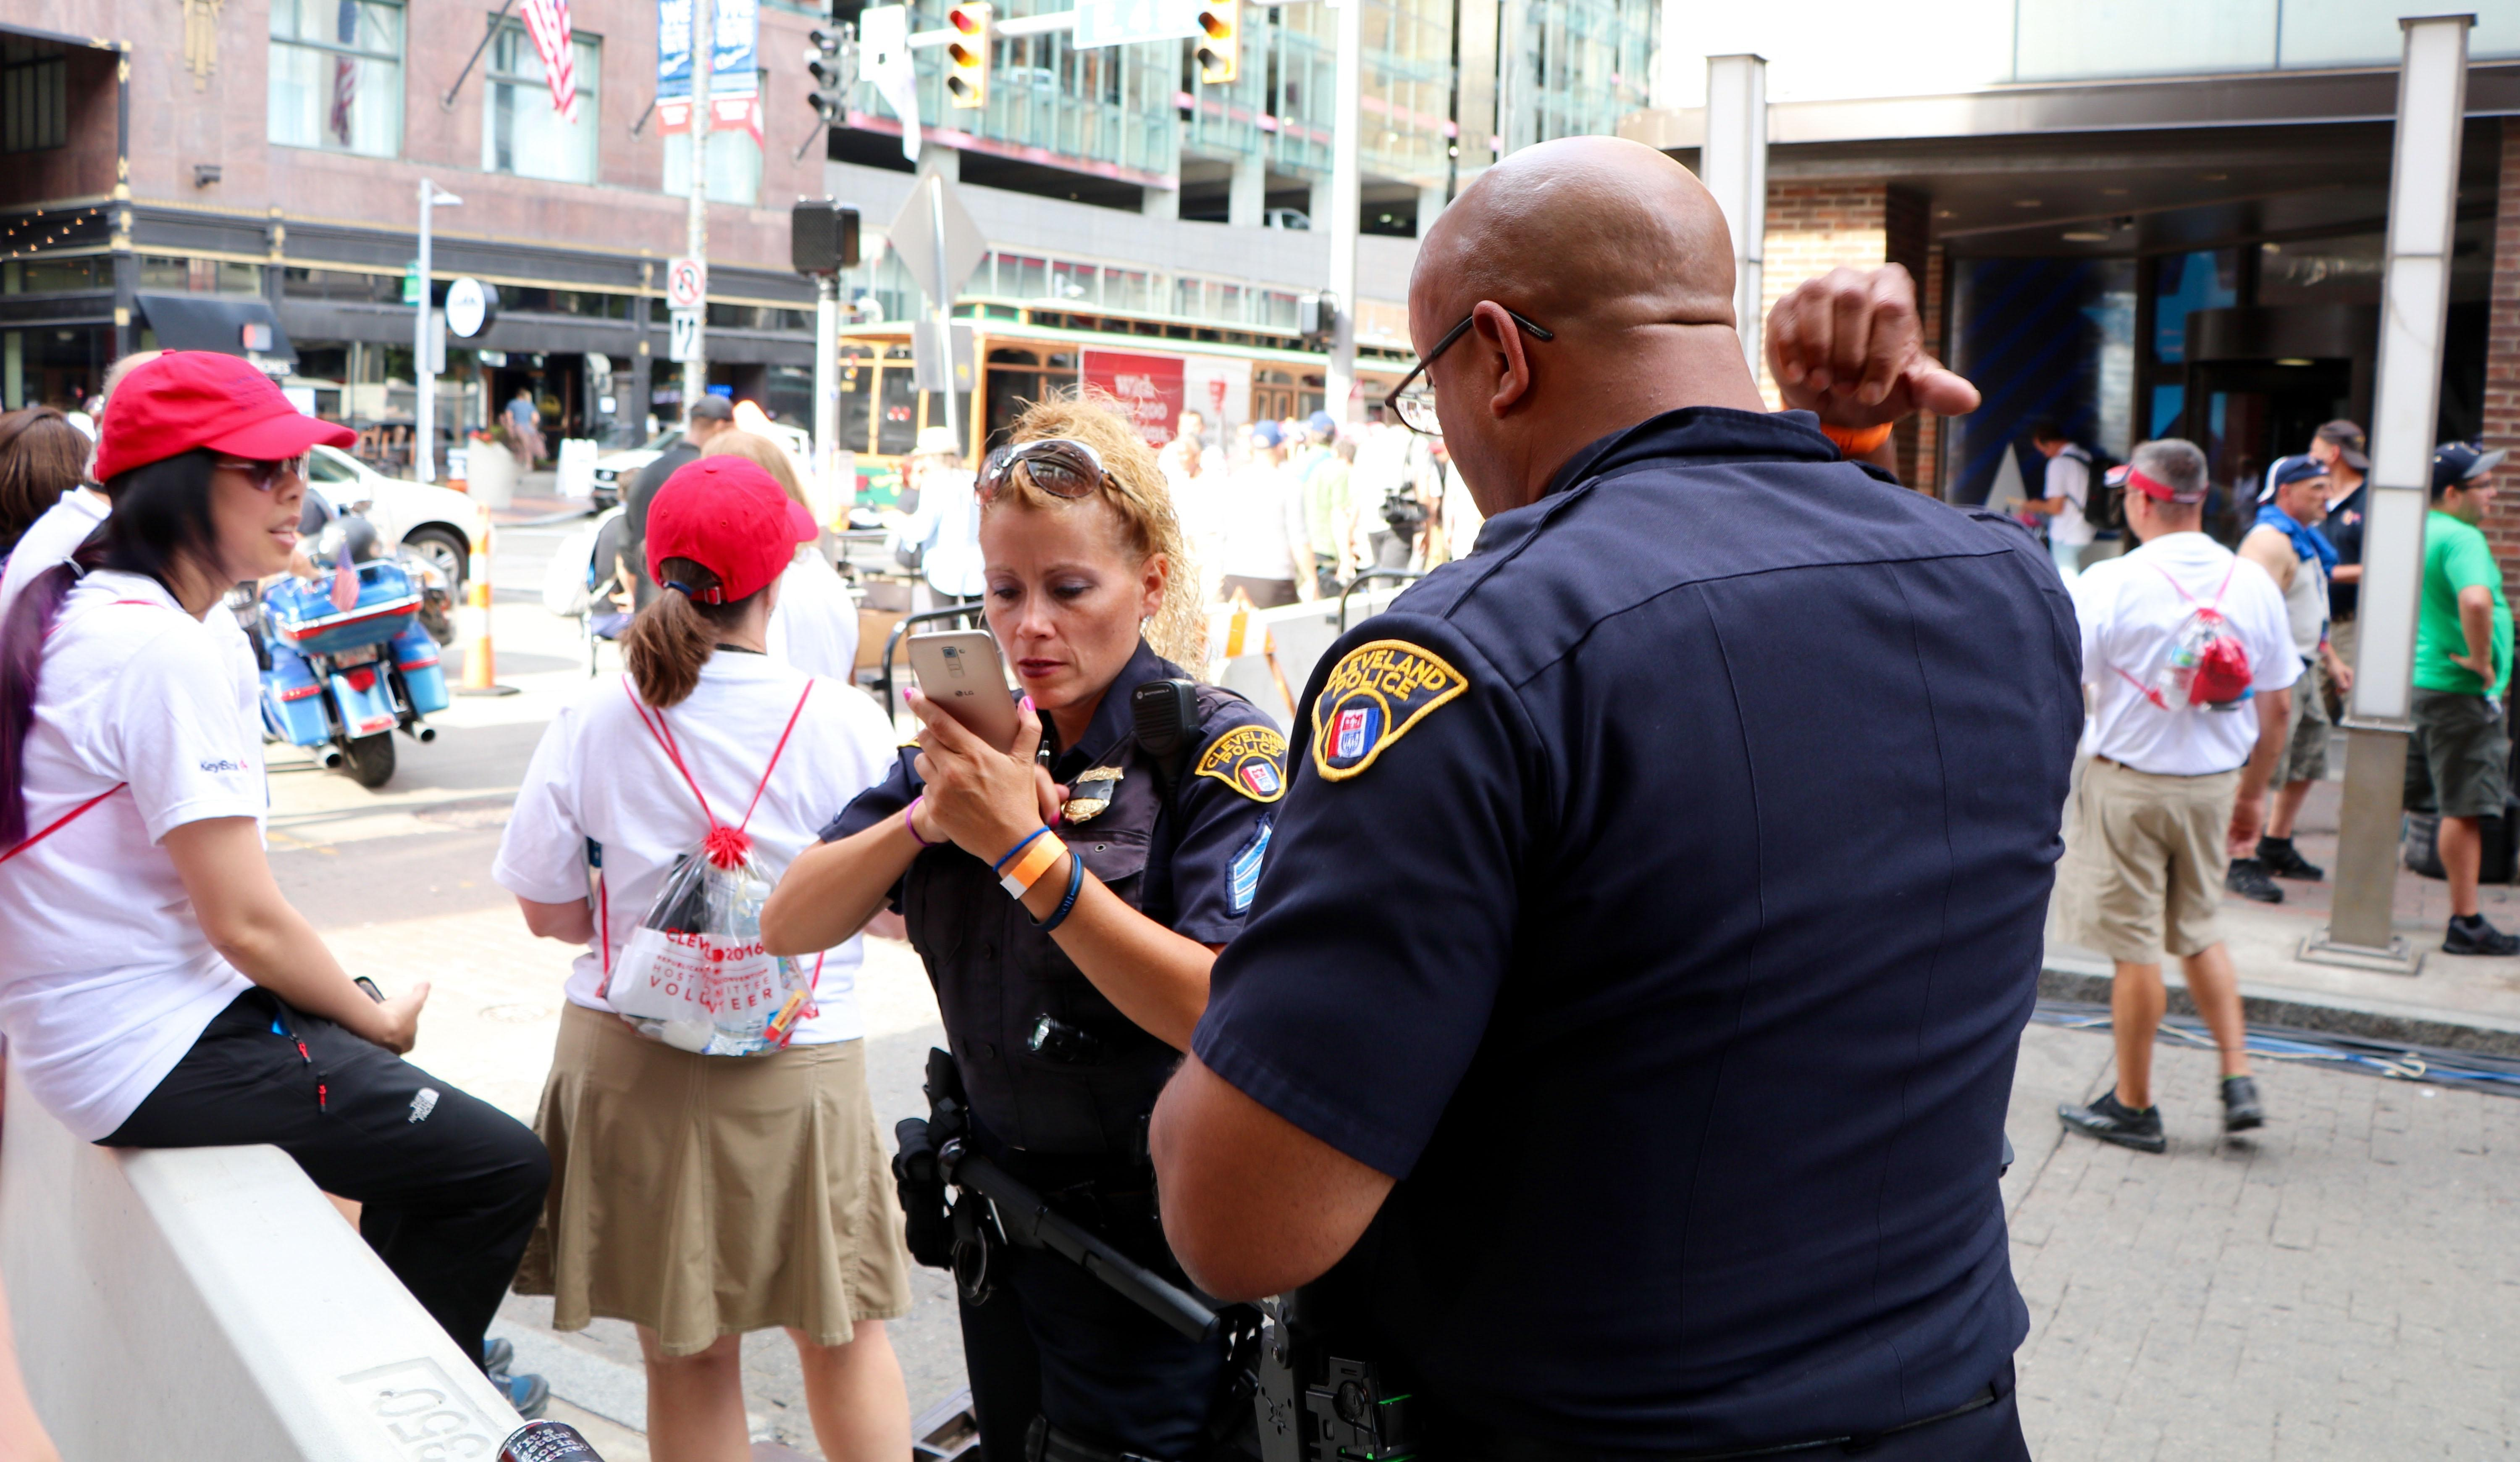 Cleveland police officers outside of the Quicken Loans Arena. (Evan Garcia)